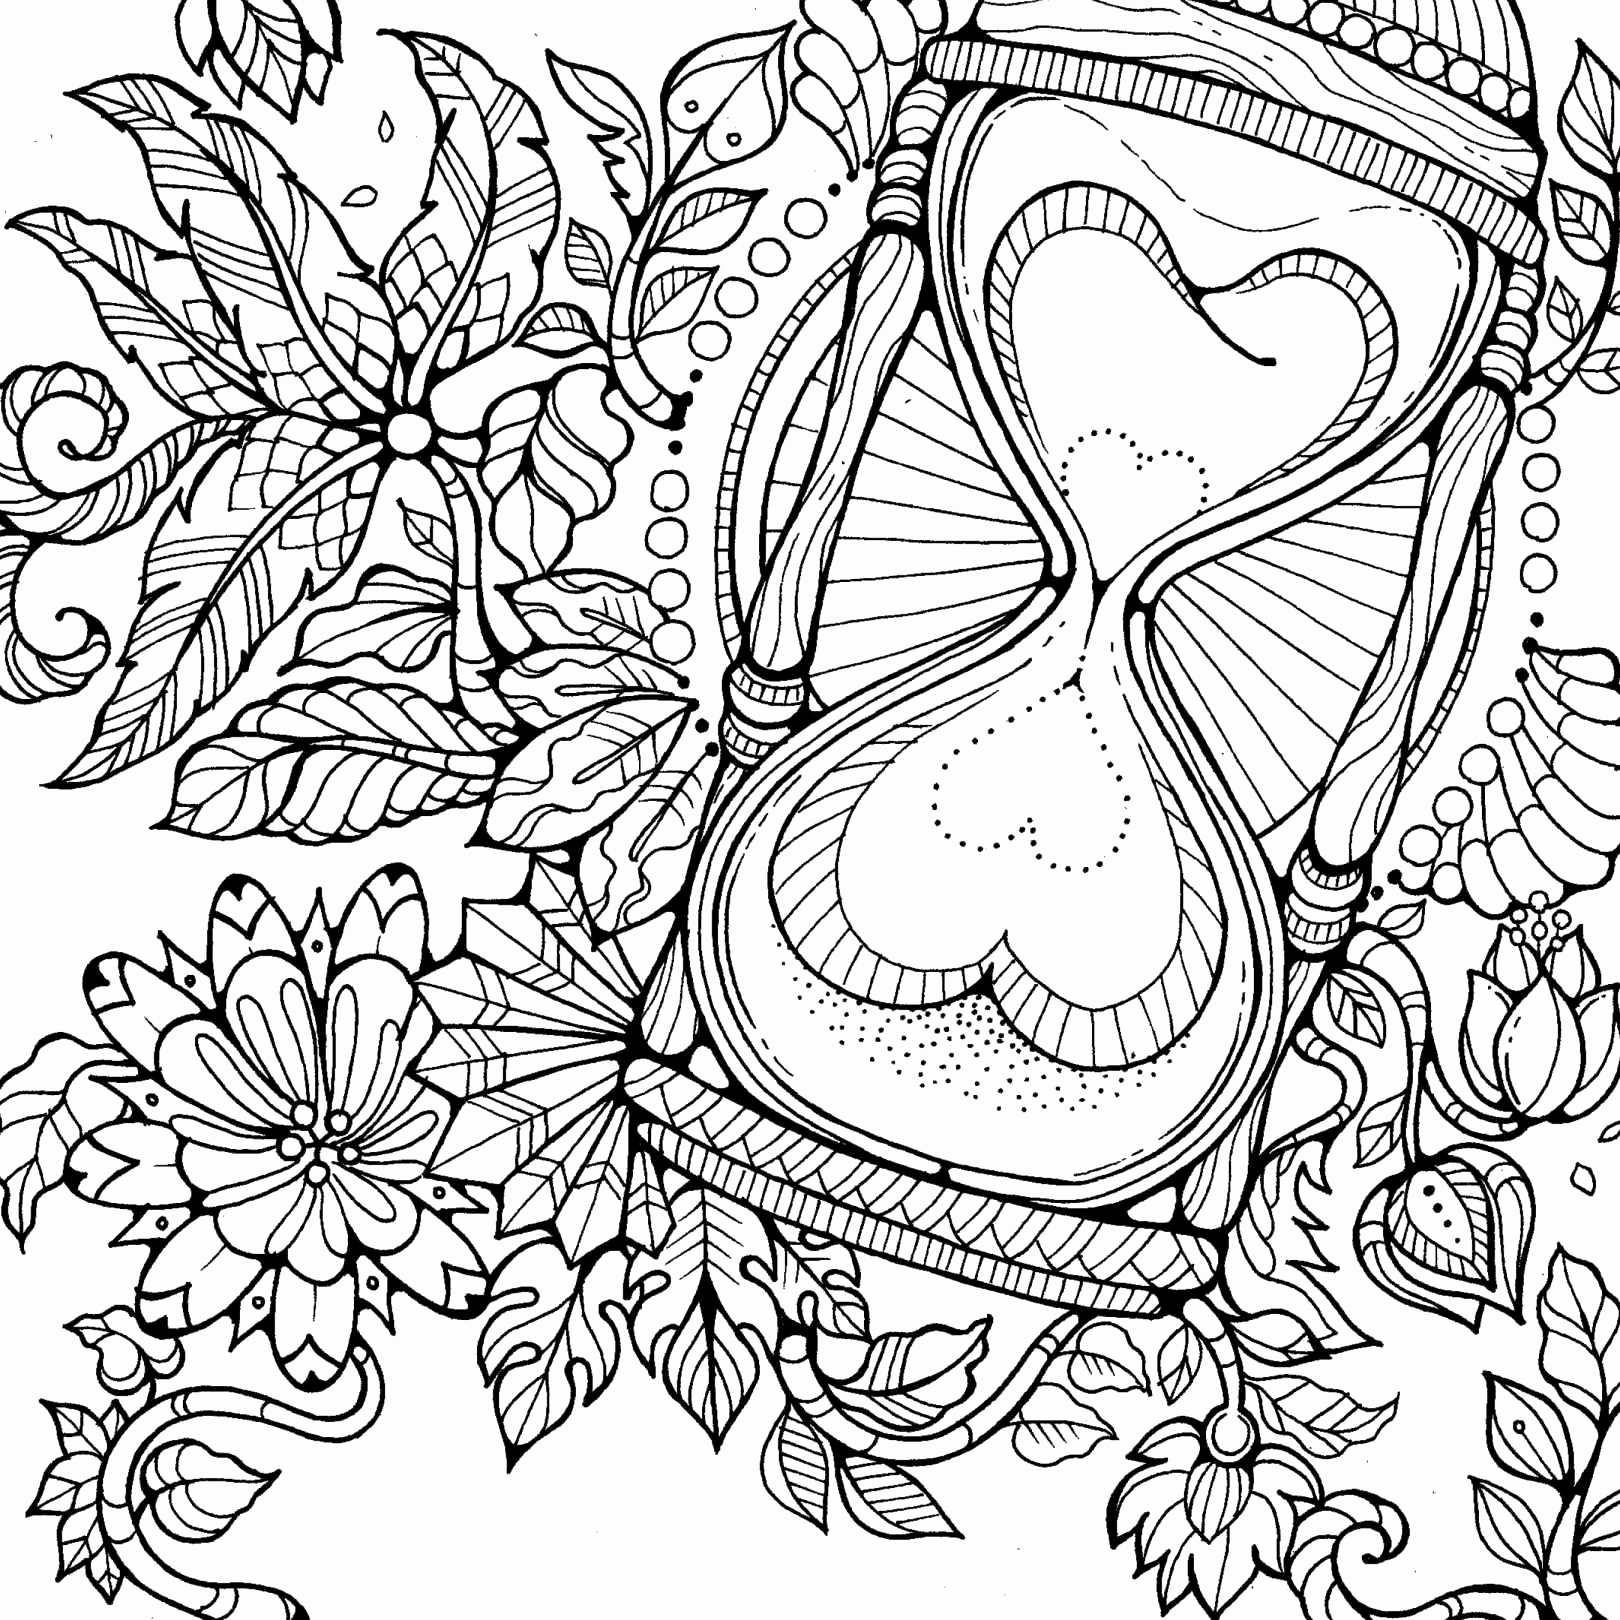 Poster Coloring Pages  Collection 9n - To print for your project